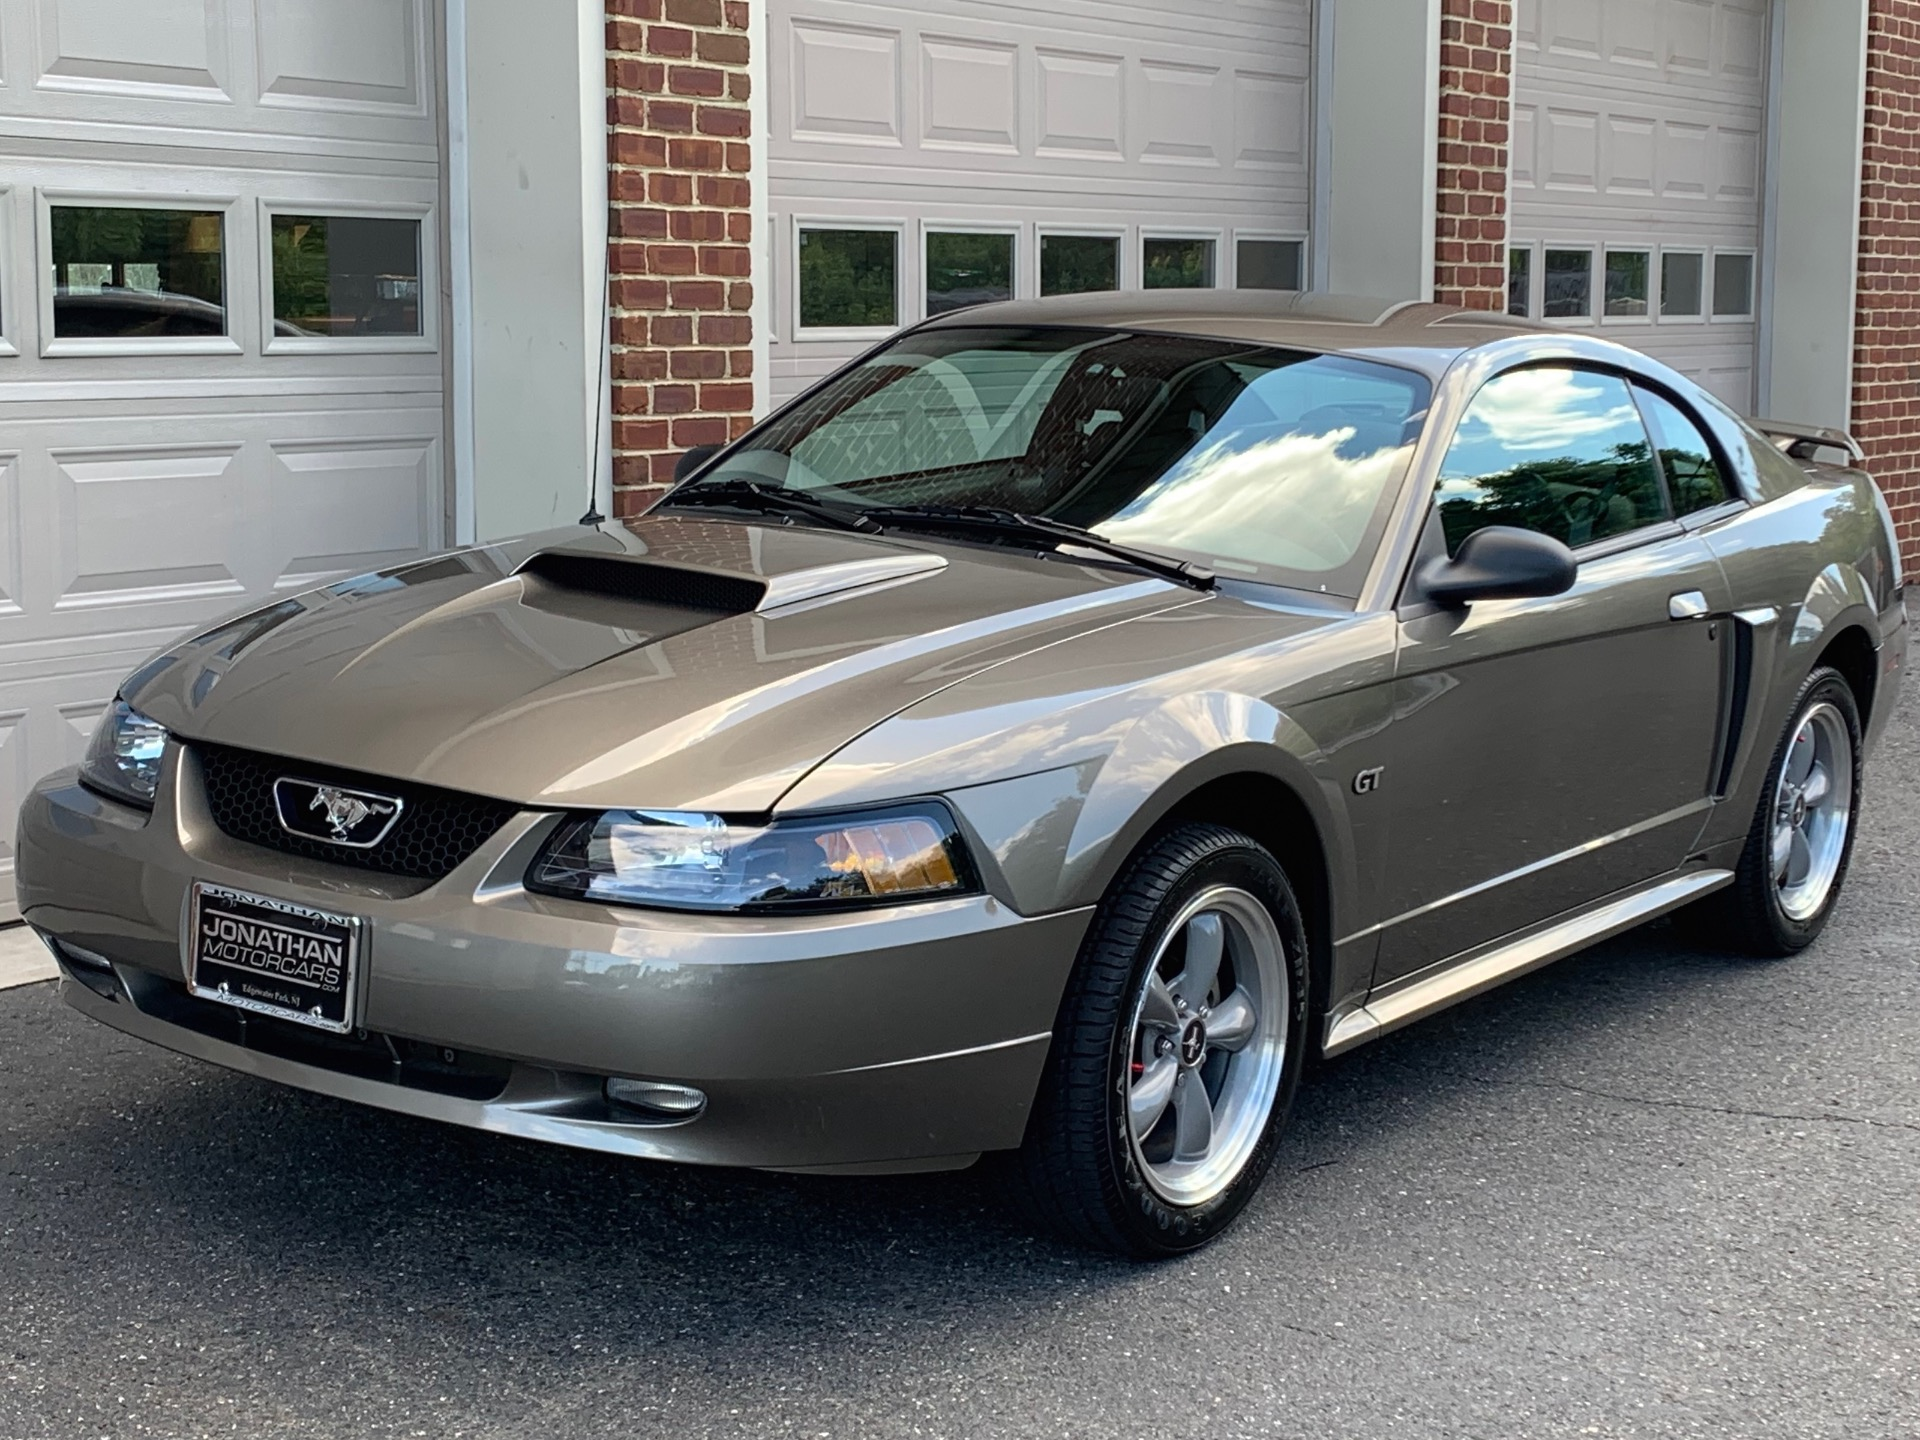 Used-2002-Ford-Mustang-GT-Deluxe